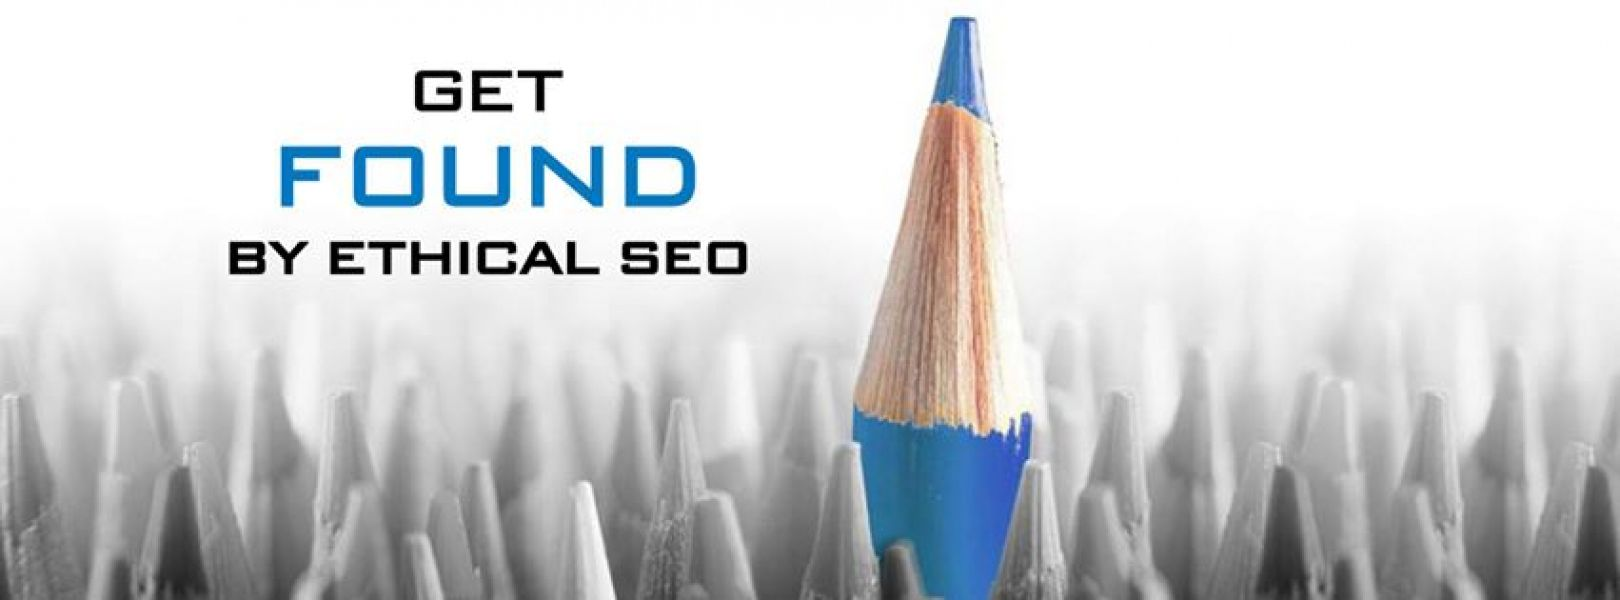 Professional SEO Agency in Sydney - Highly Recommended!